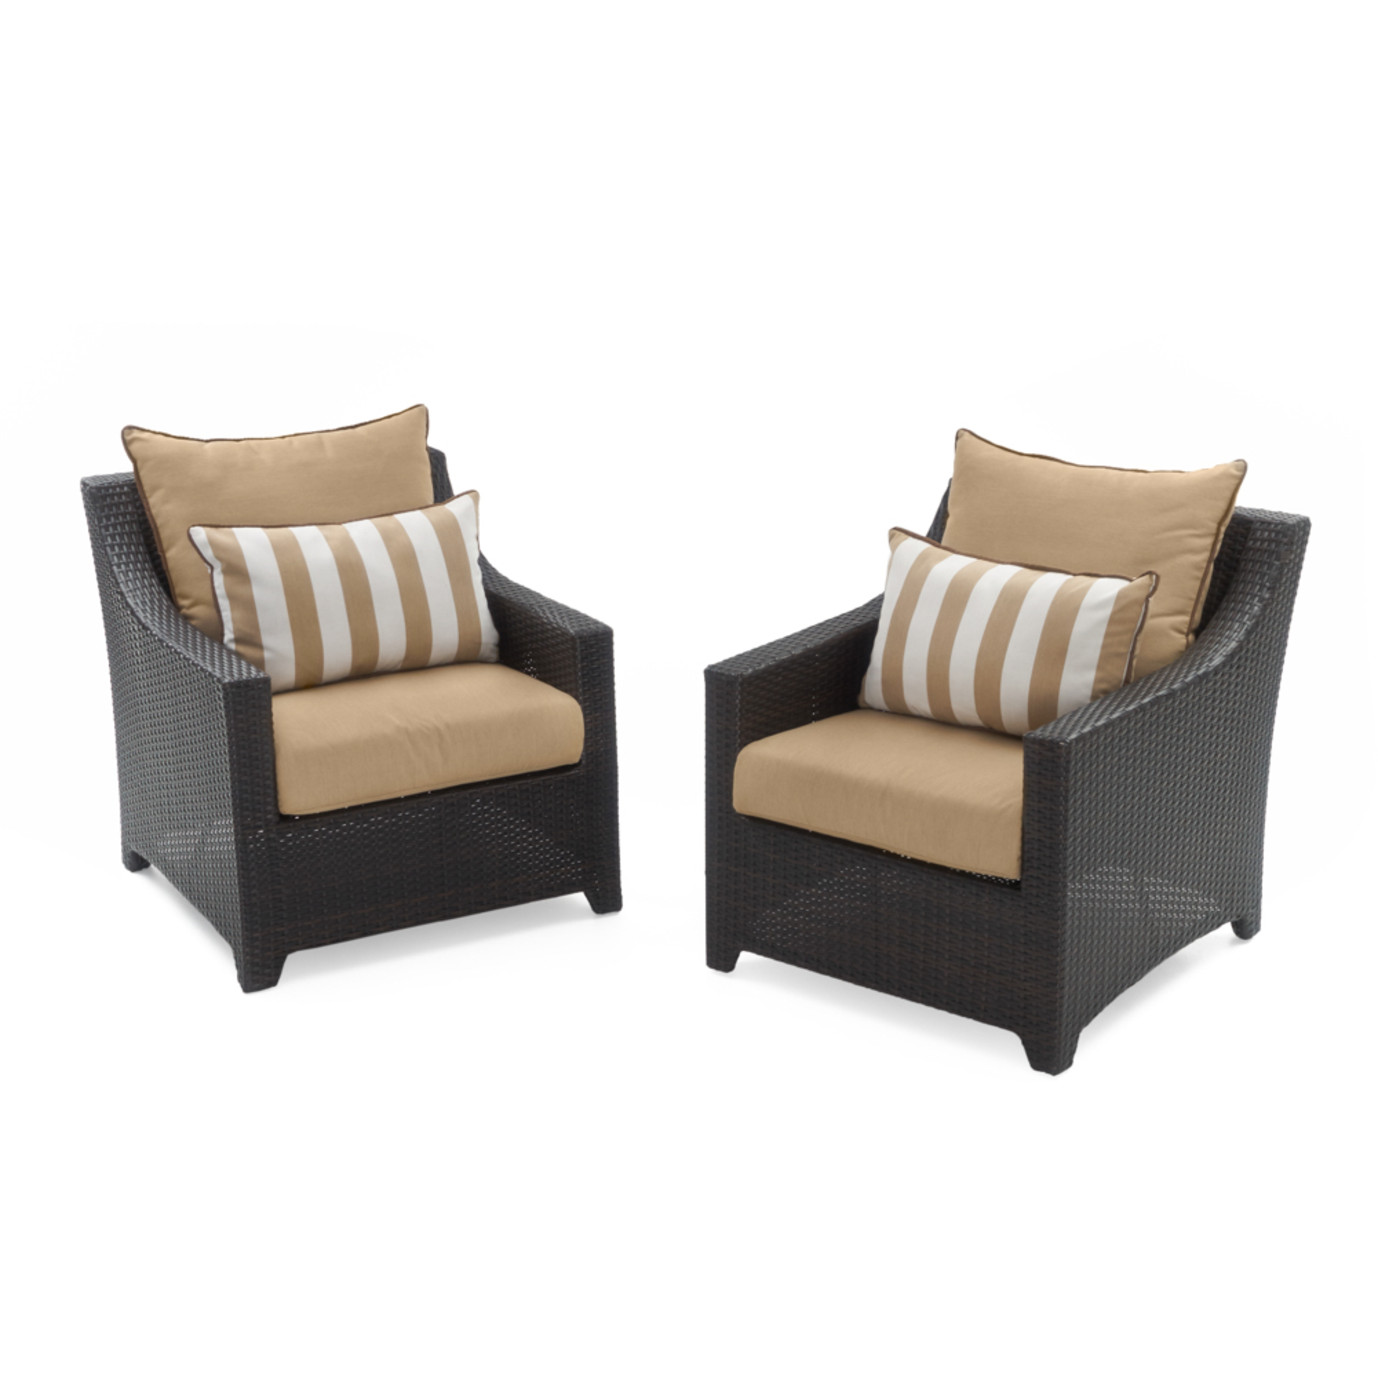 Deco™ Club Chairs - Maxim Beige